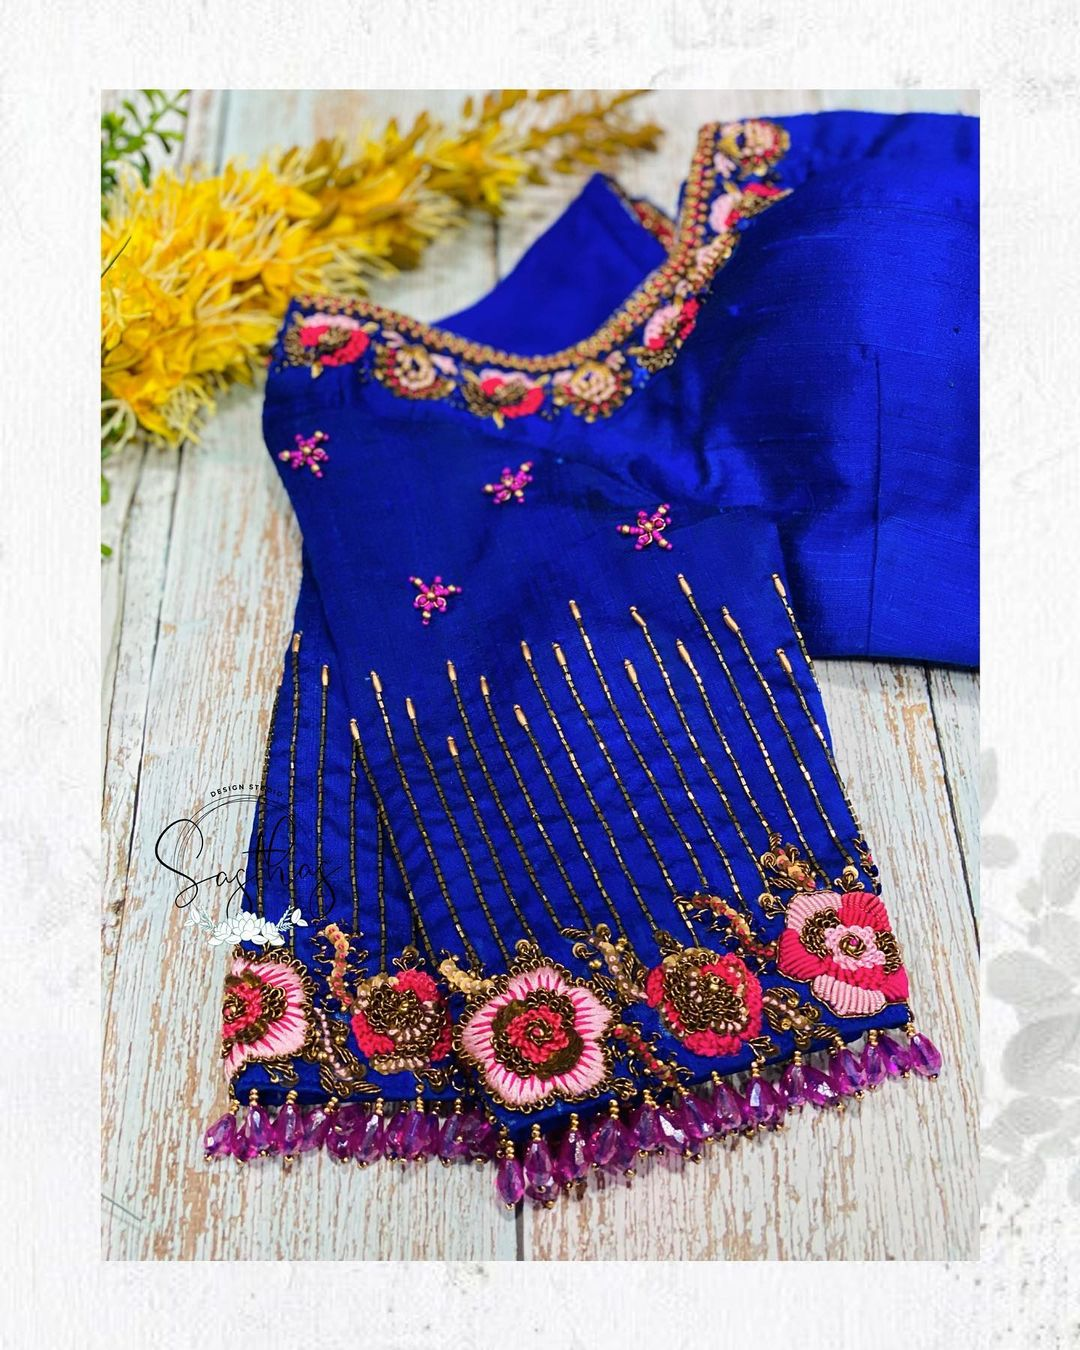 Stunning blue color bridal blouse with floral thread work on sleeves and neckline. 2021-08-29